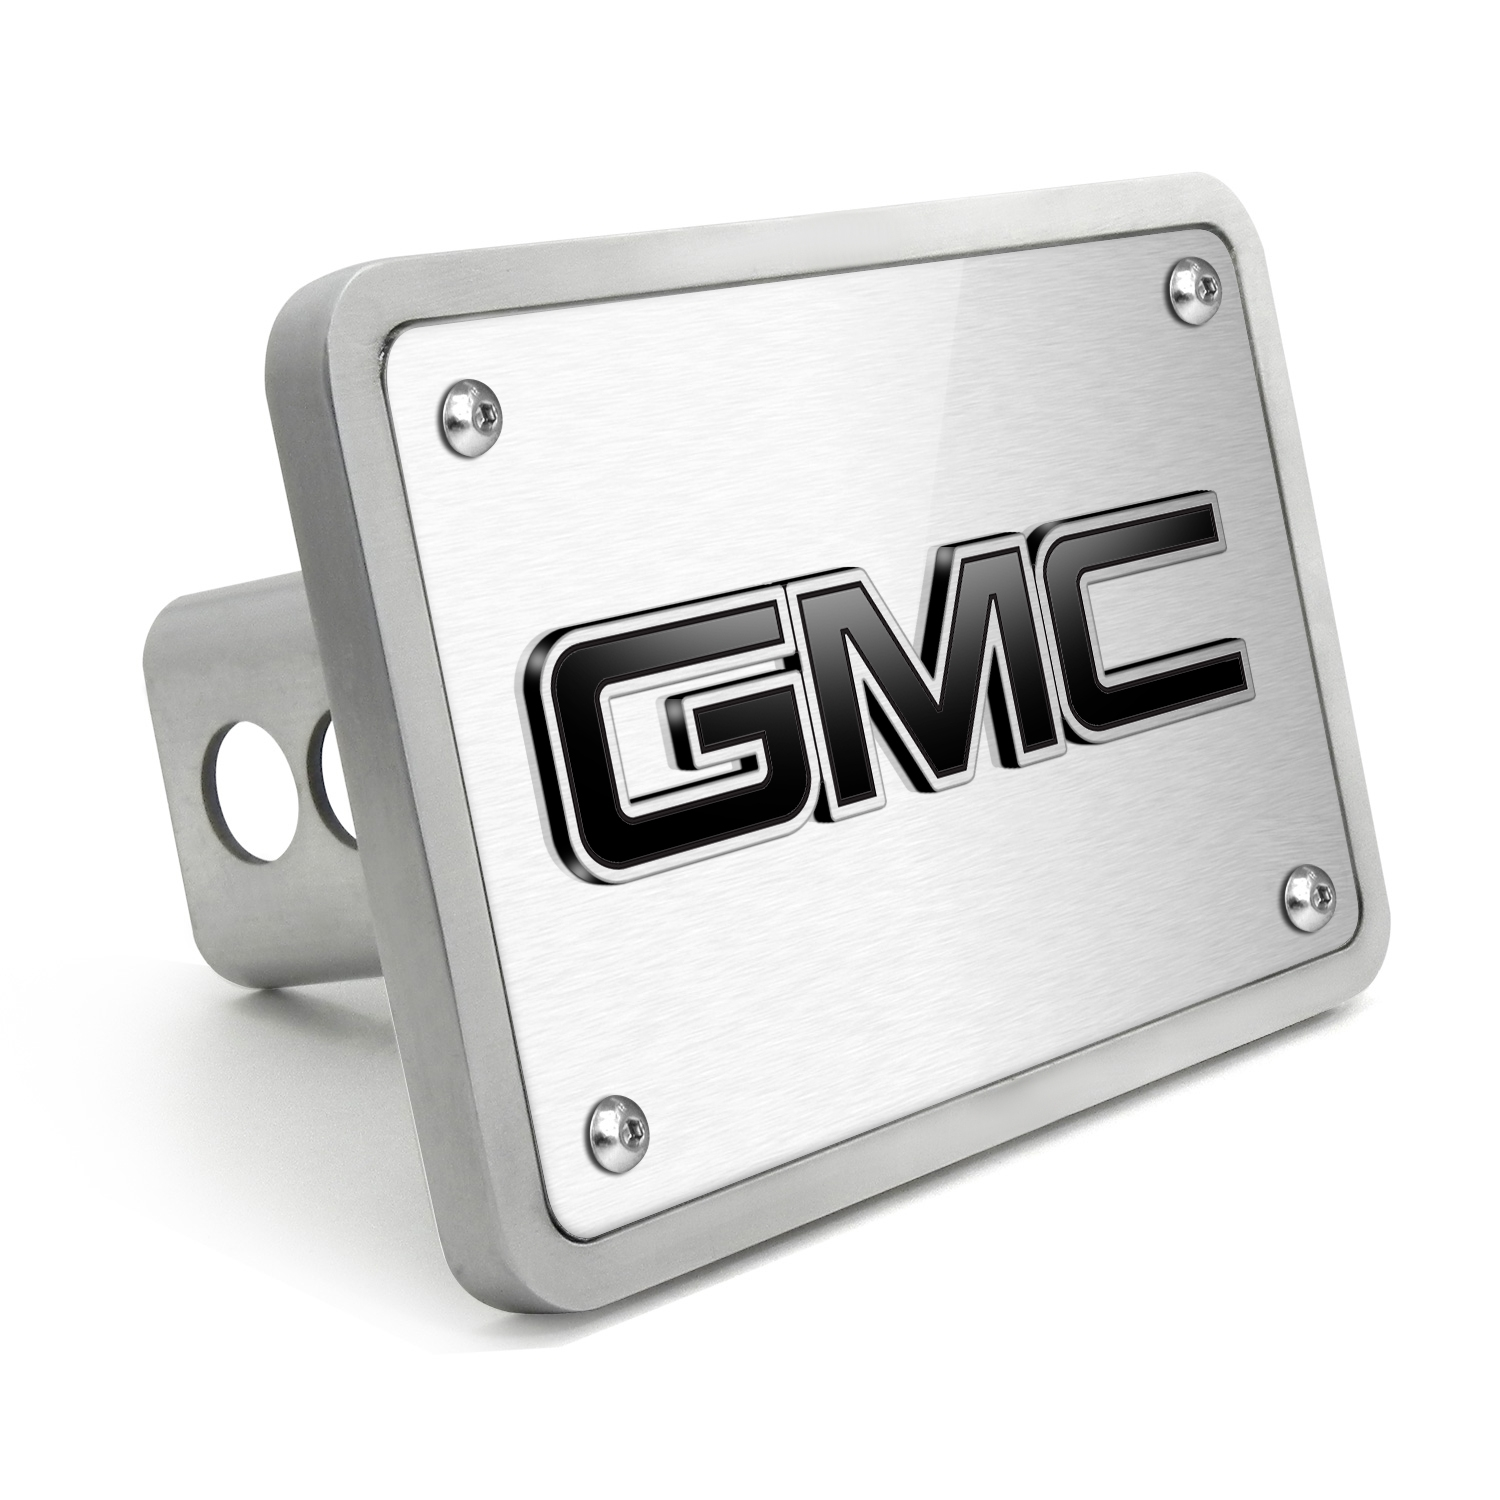 GMC 3D Logo in Black Inlay Brush Billet Aluminum 2 inch Tow Hitch Cover